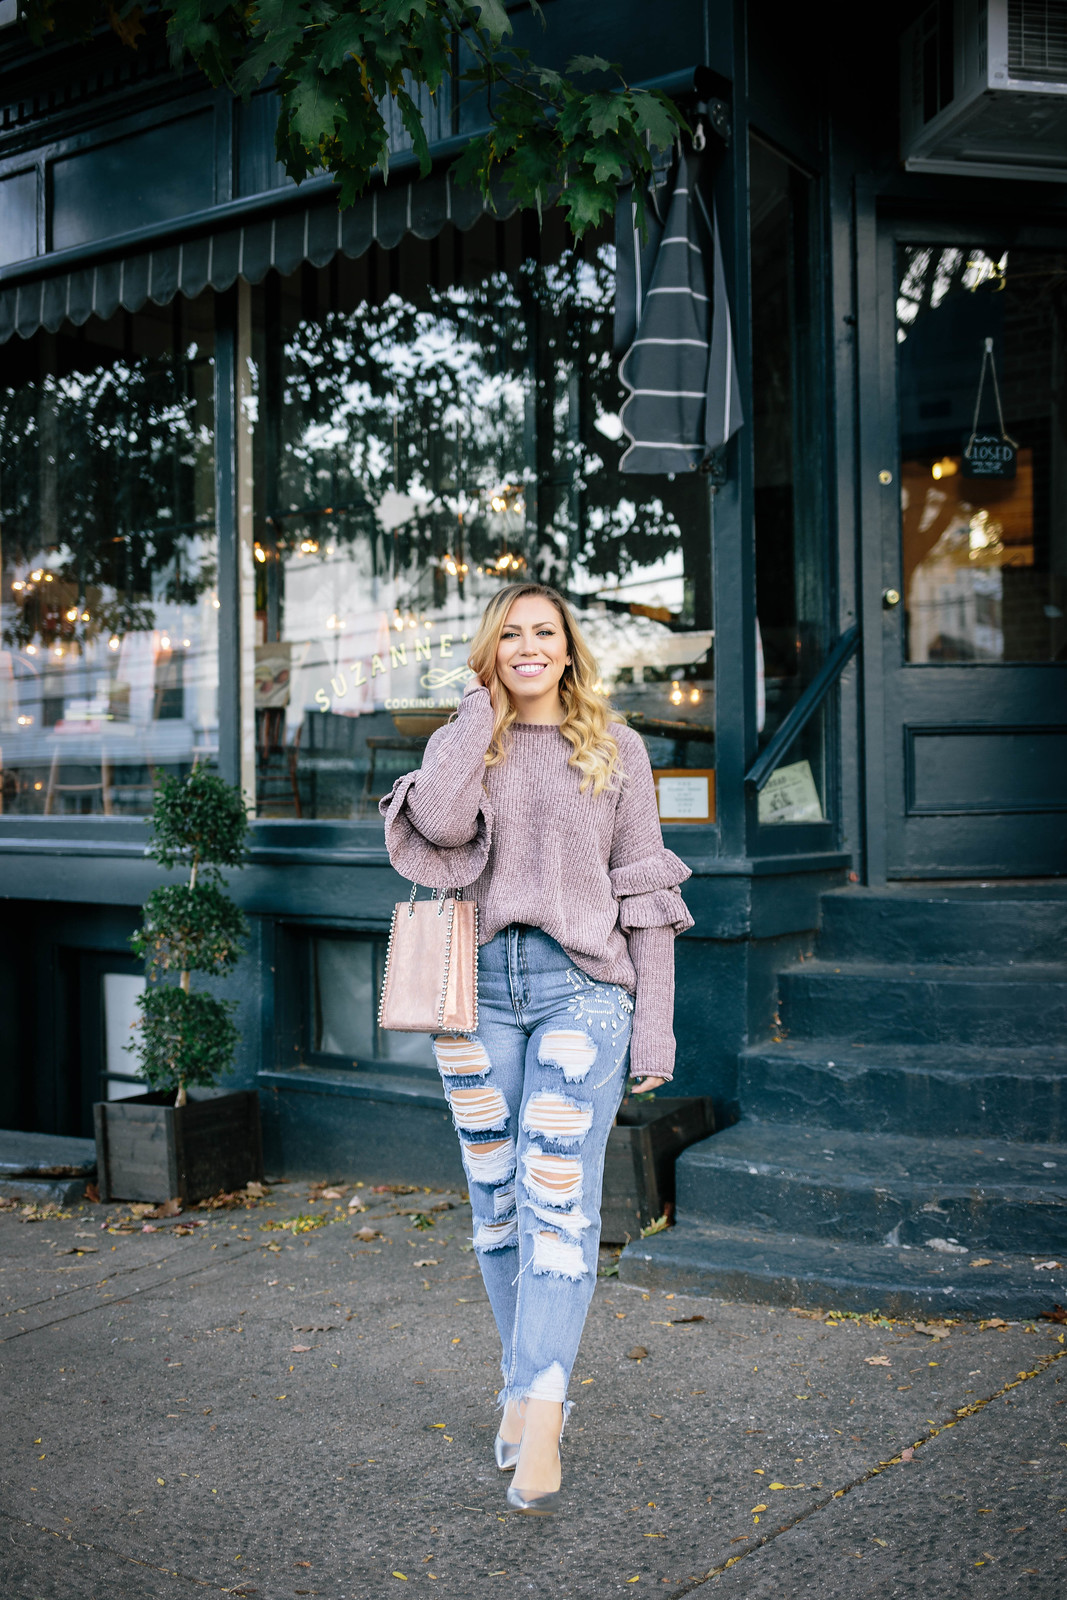 Purple Chenille Sweater | Embellished Distressed Jeans | Fall Outfit Inspiration